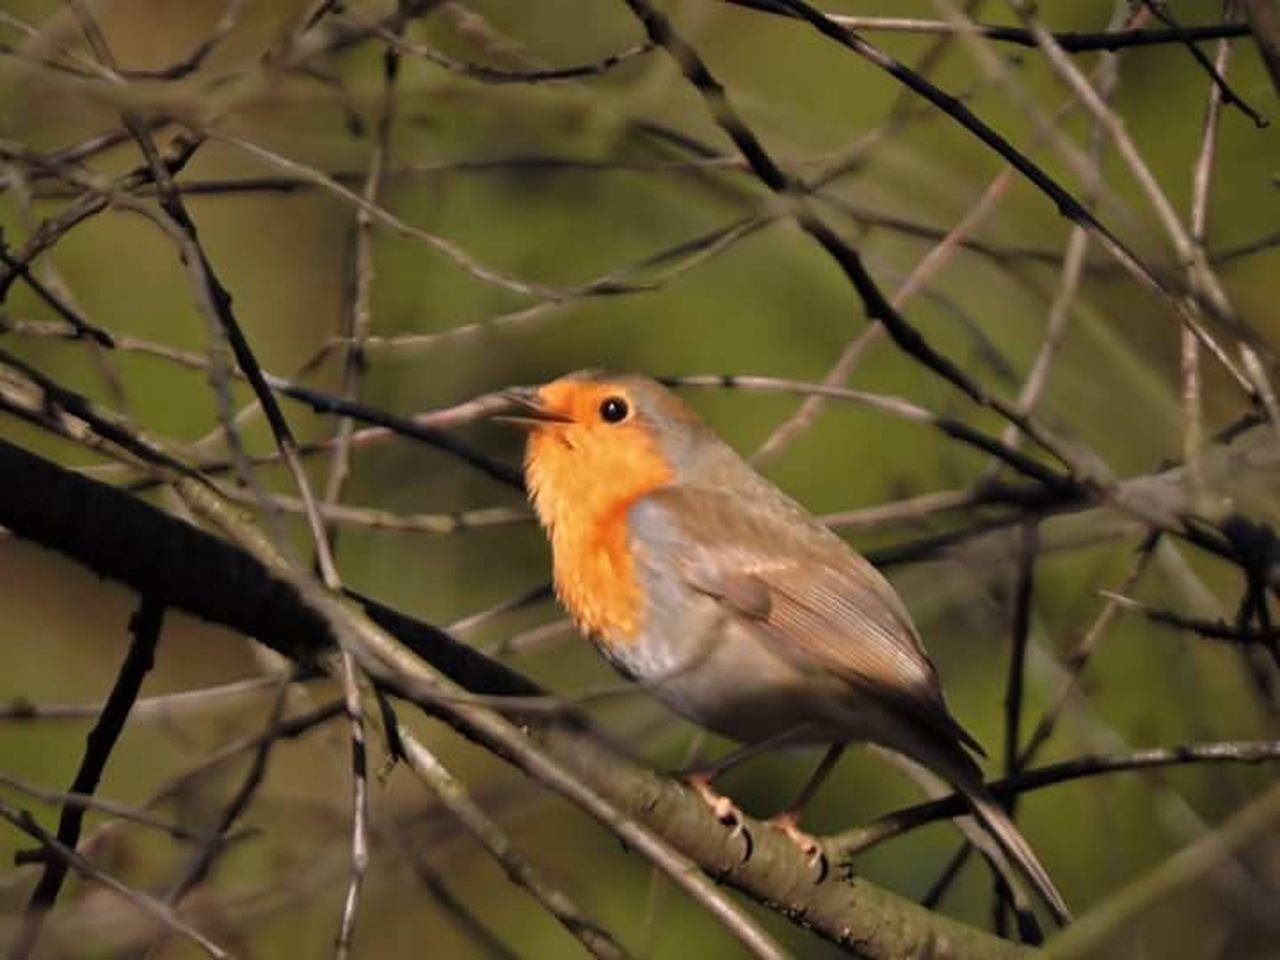 One Animal Bird Animal Themes Branch Animal Wildlife Nature Animals In The Wild Beauty In Nature No People Robin Perching Outdoors Close-up Day